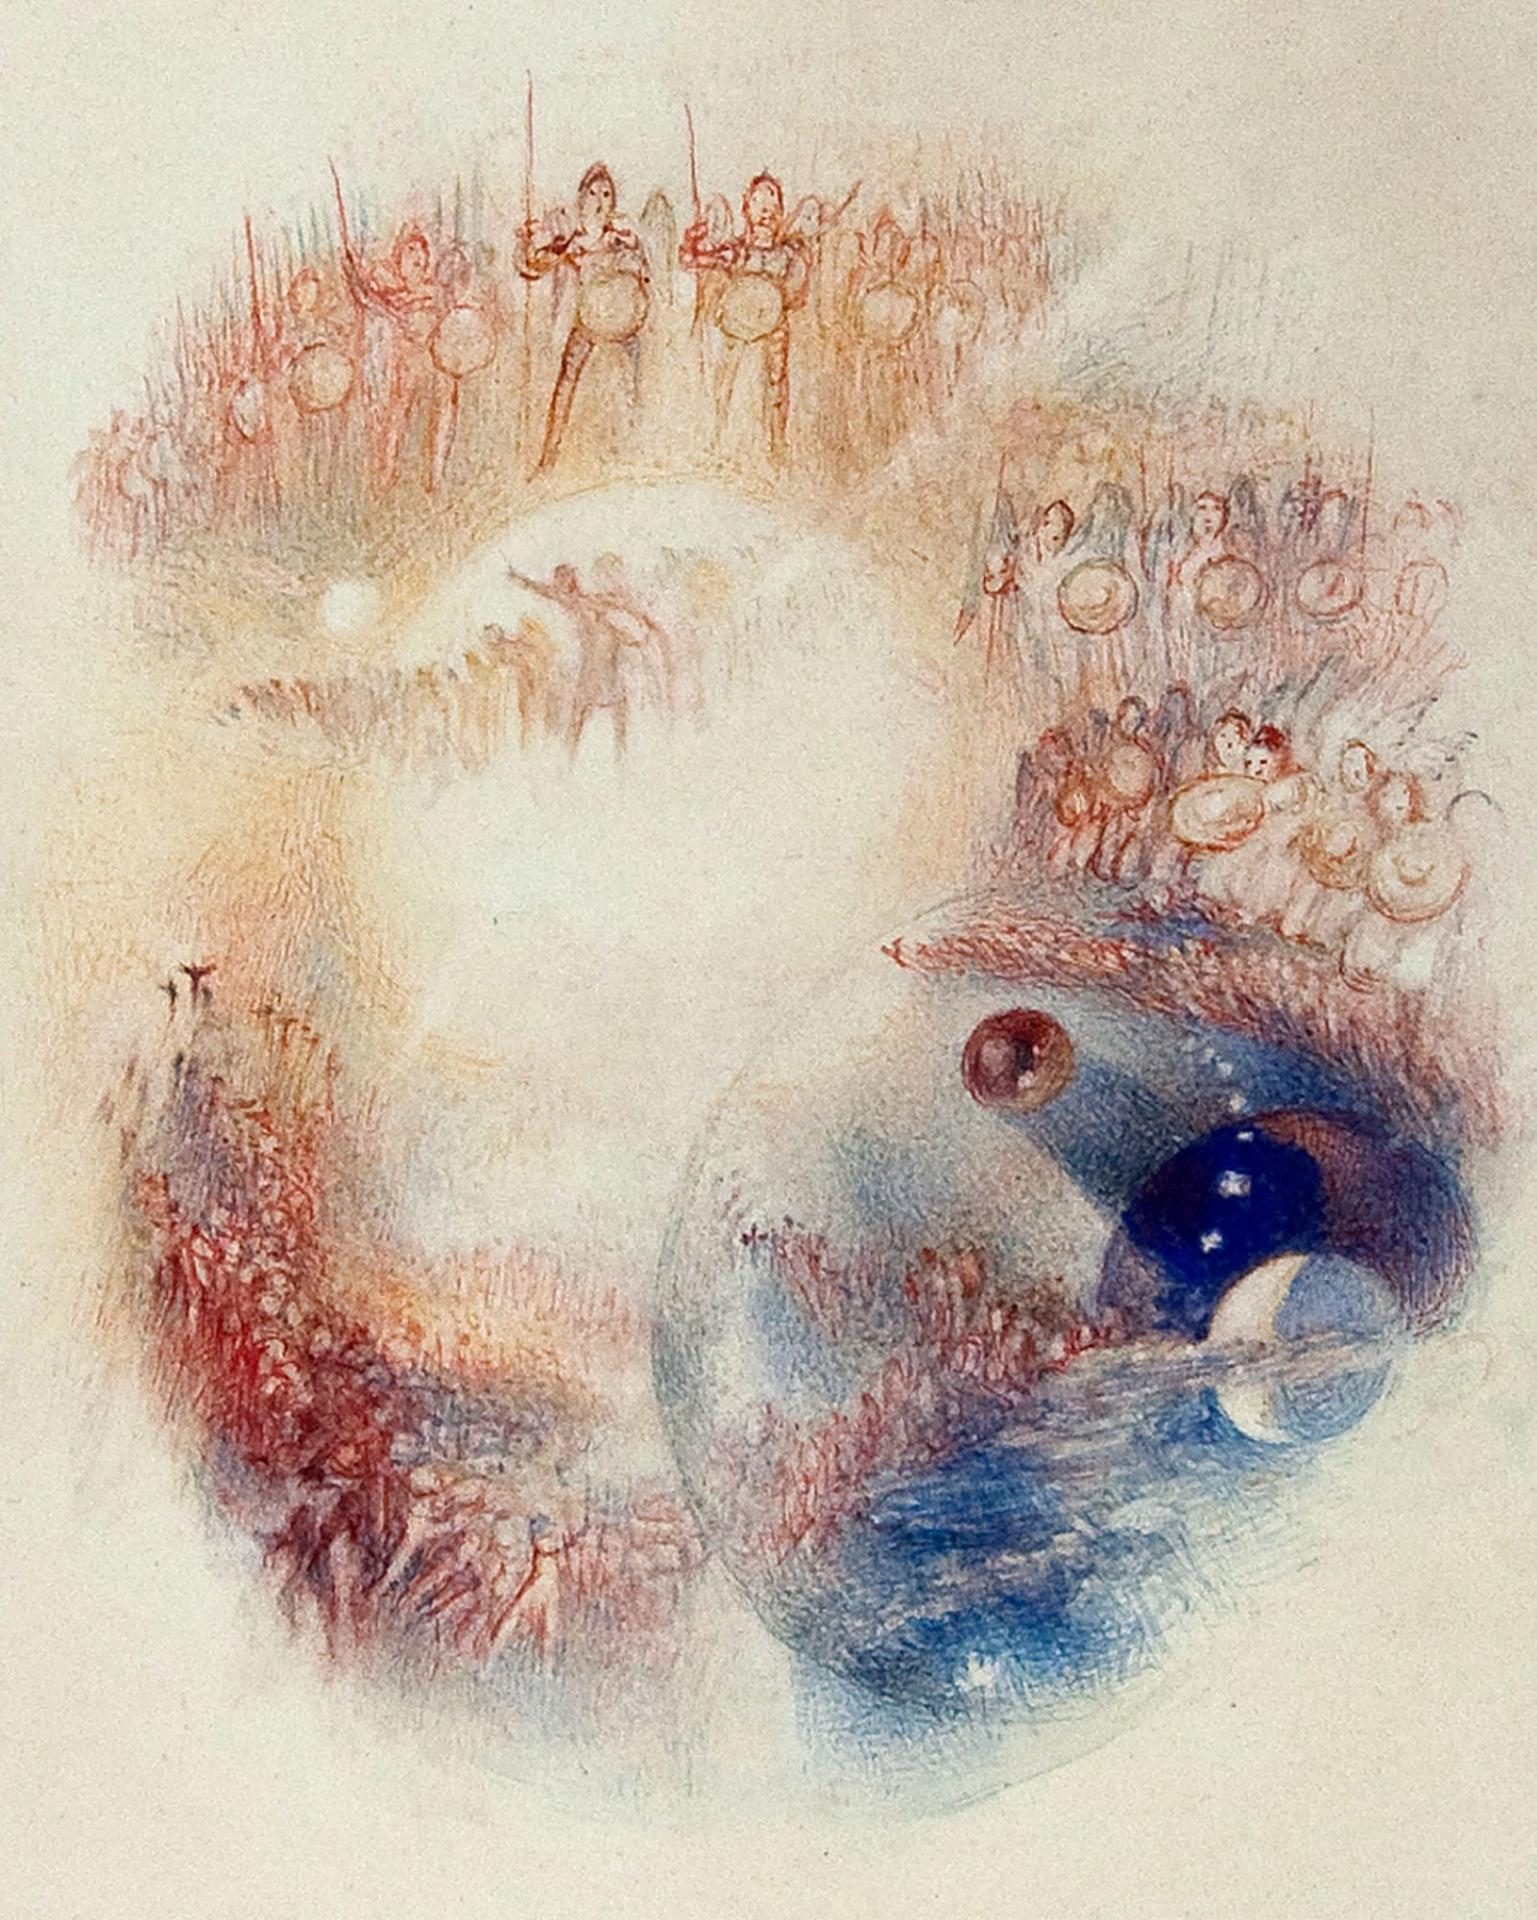 Watercolour by Turner called the Mustering of the Warrior Angels